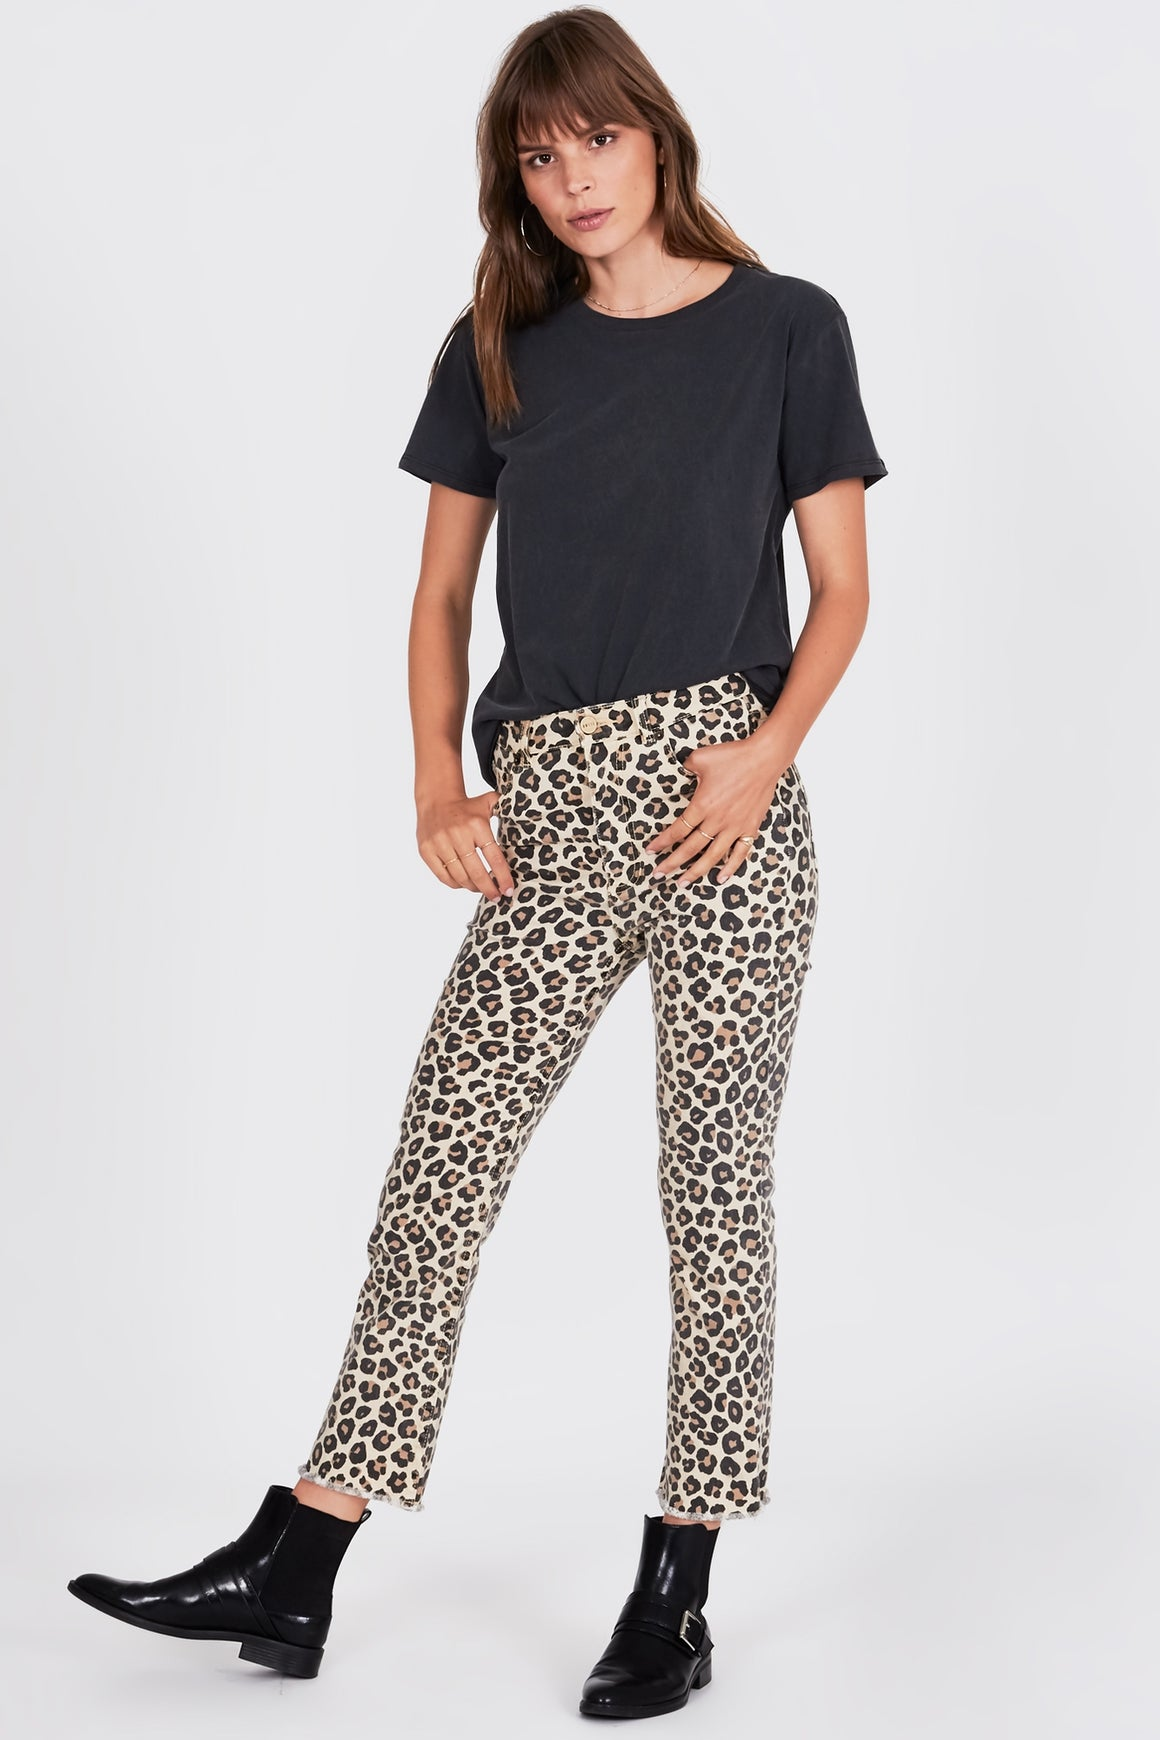 leopard print jeans by Amuse Society